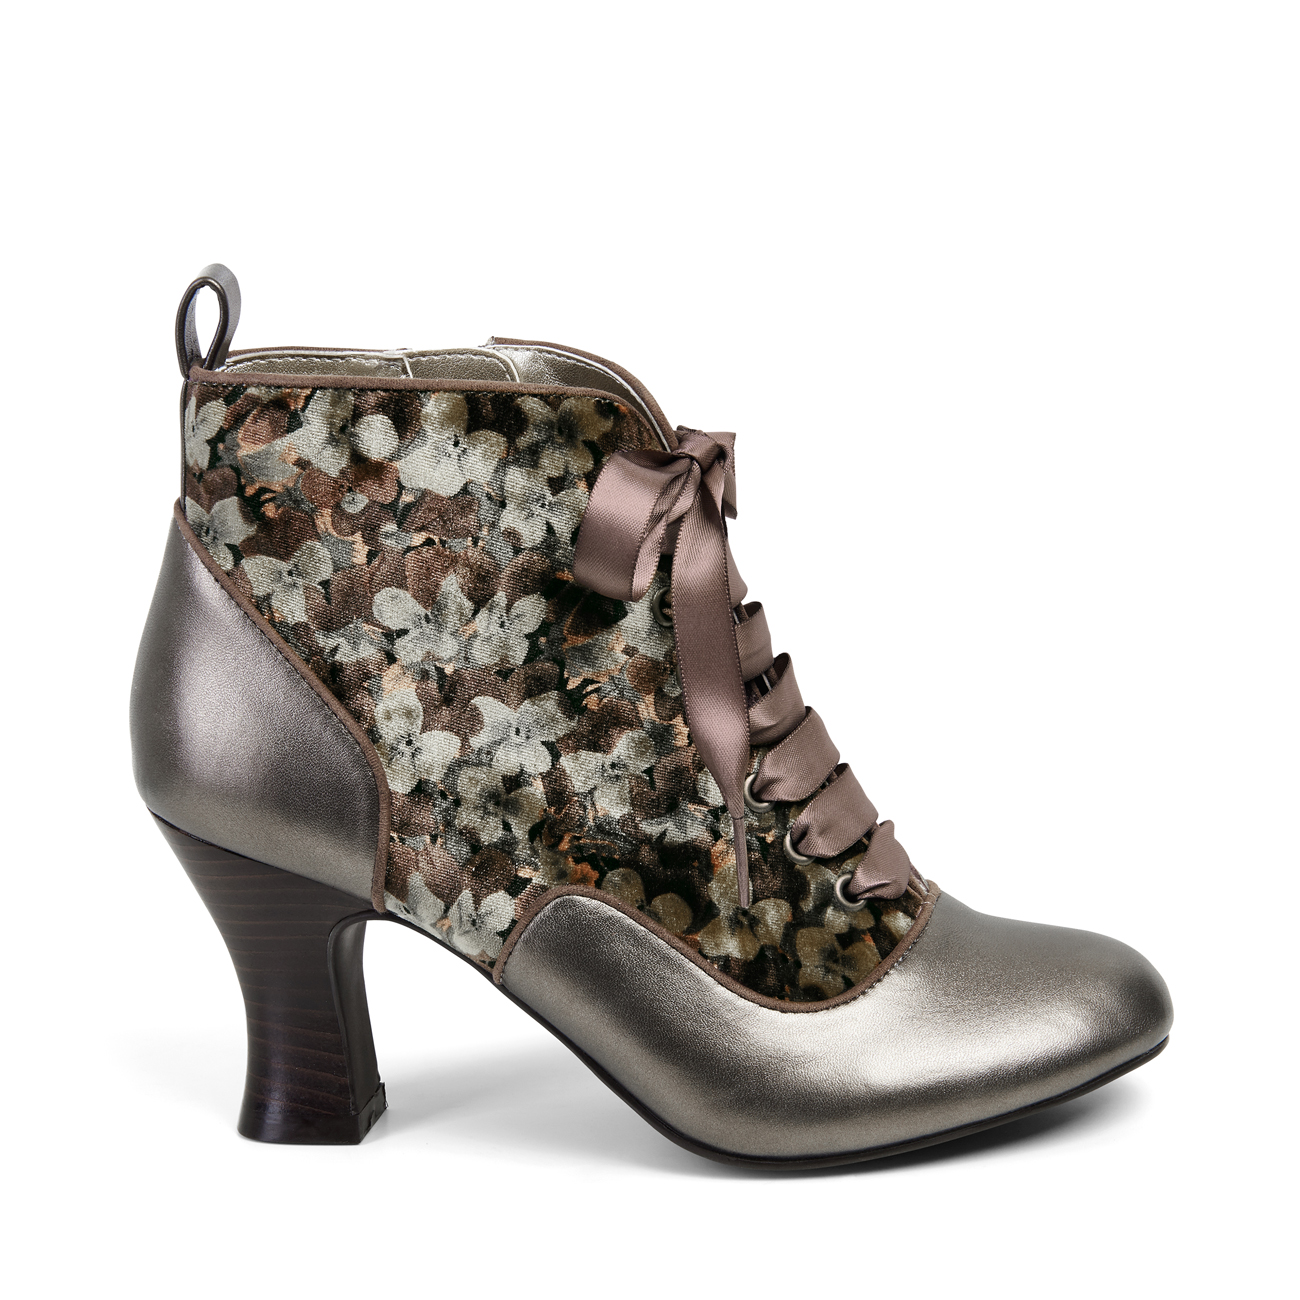 Ruby-Shoo-Bailey-Ankle-Boots-amp-Matching-Acapulco-